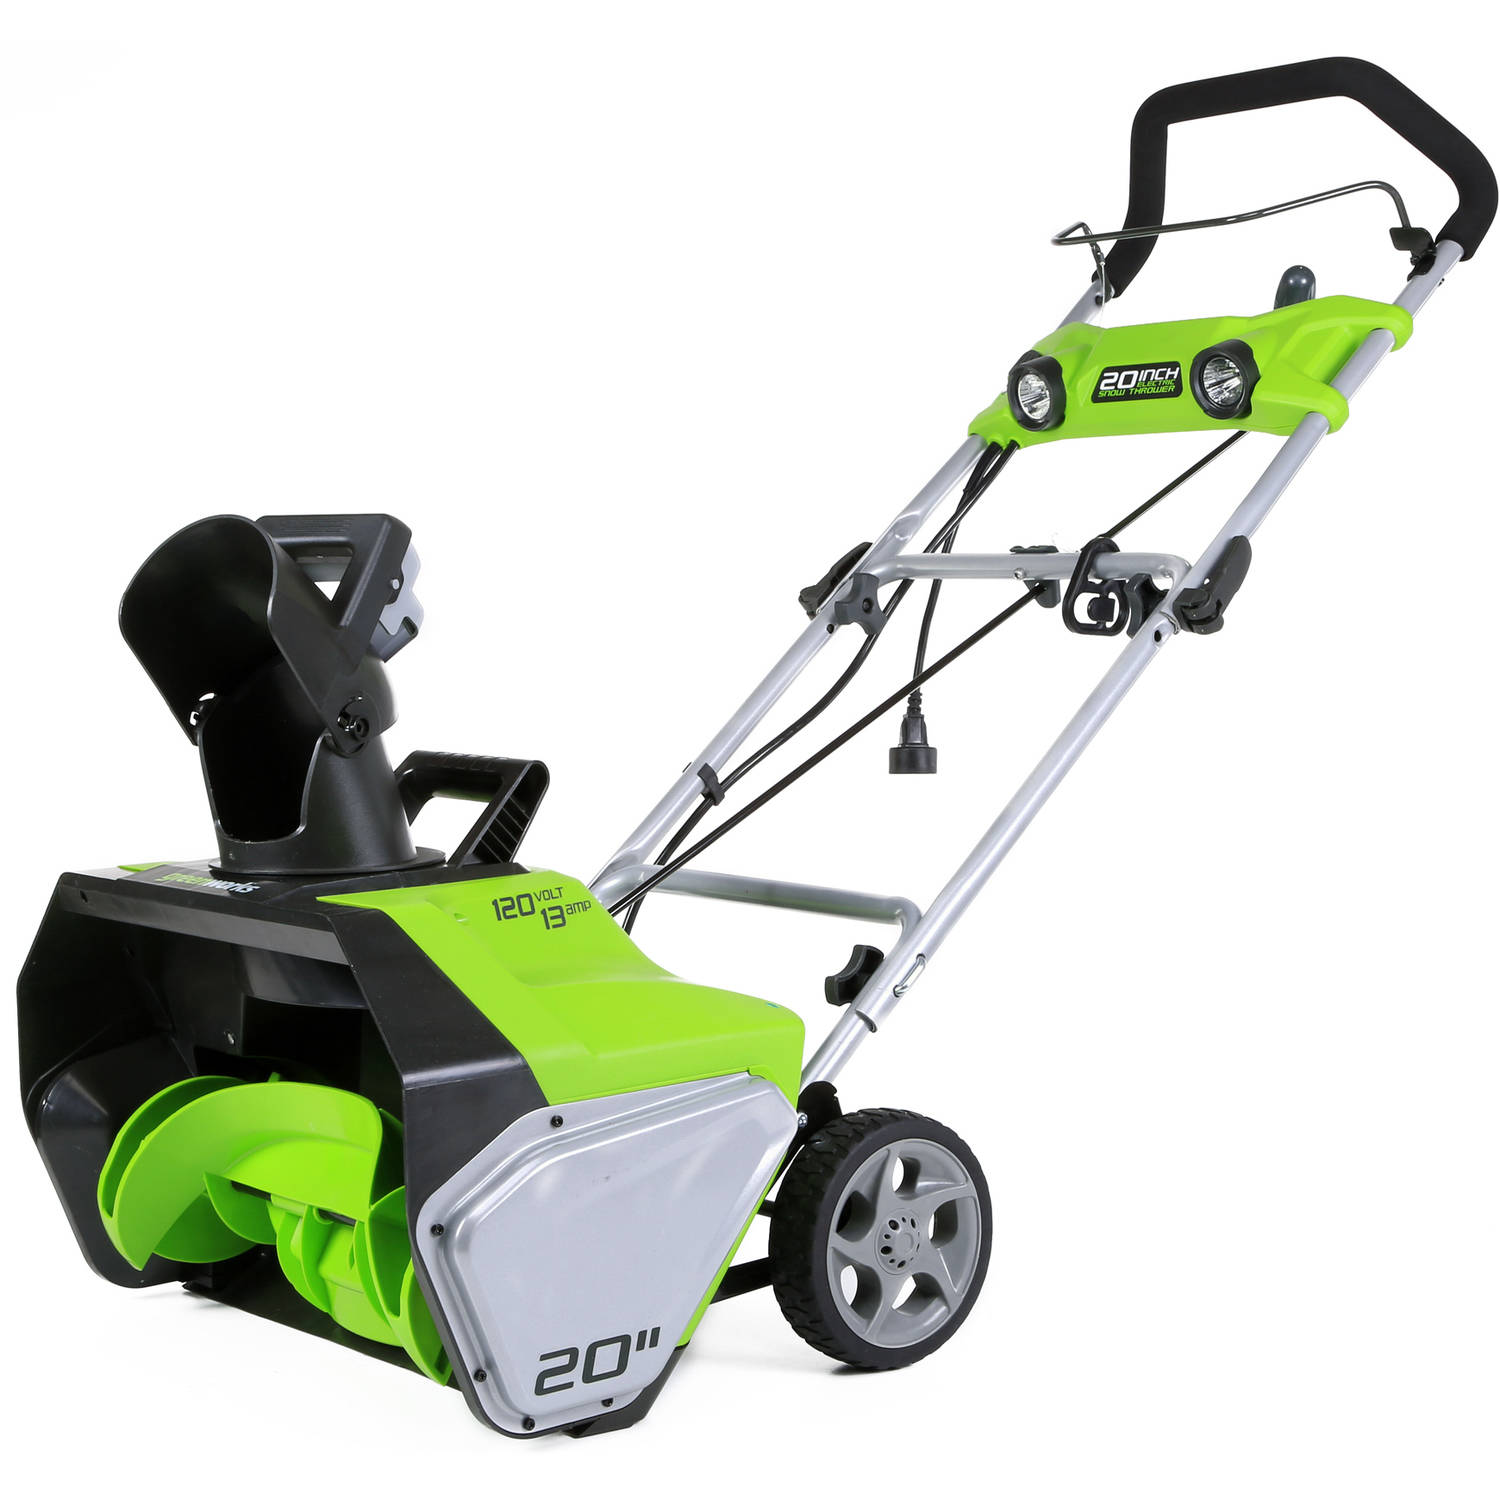 "GreenWorks 2600202 13-Amp 21"" Corded Snow Thrower"